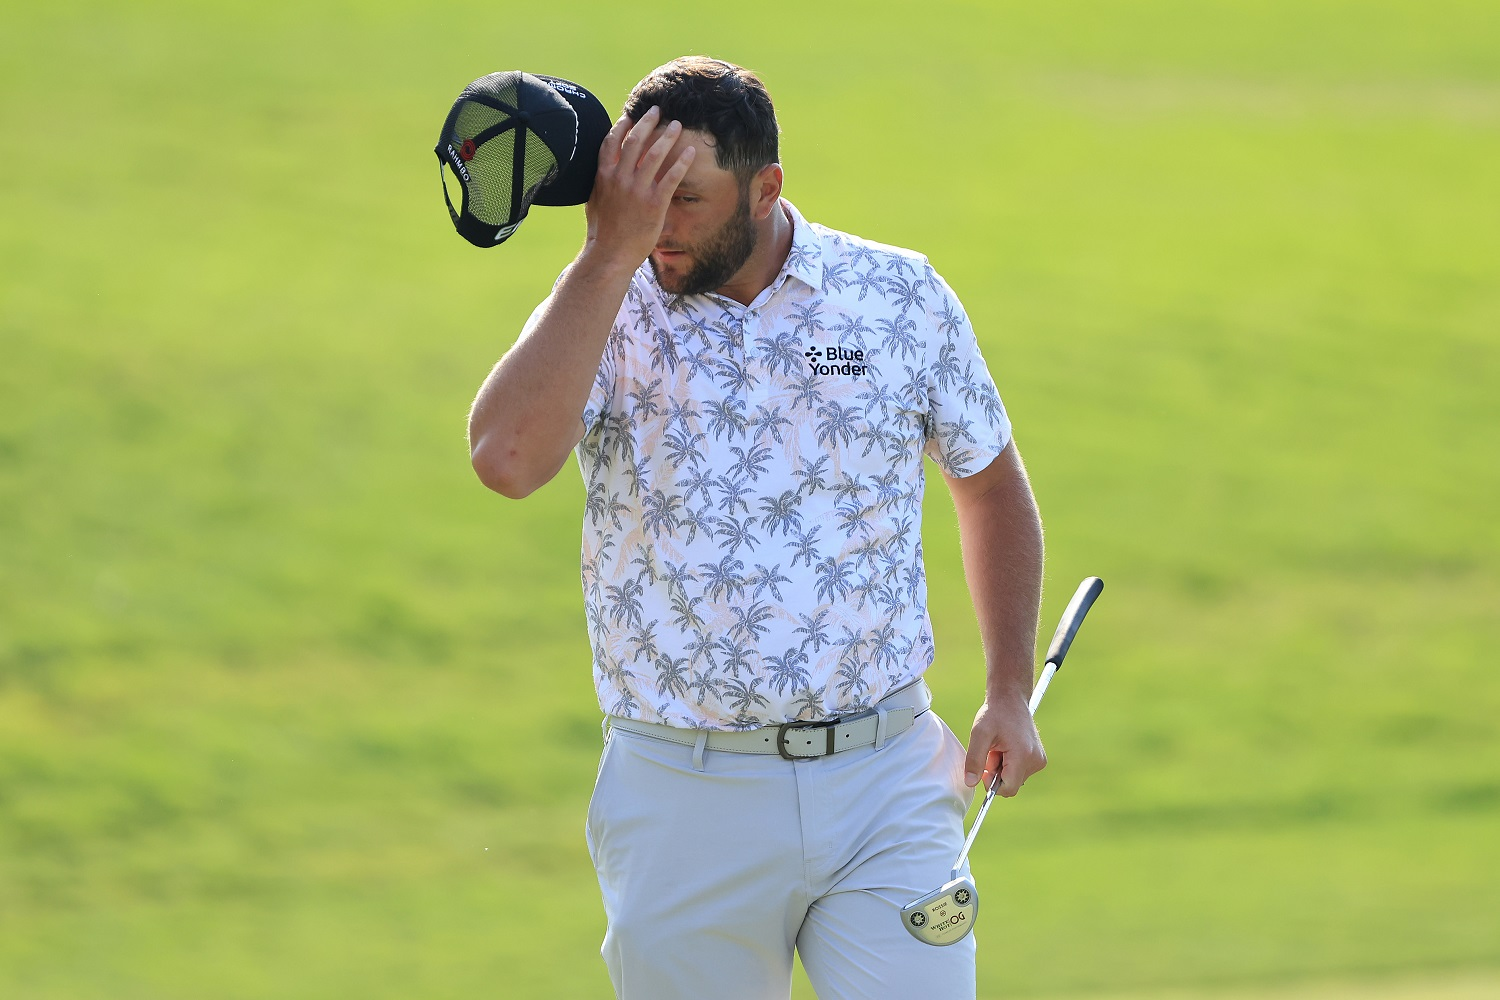 Jon Rahm reacts as he walks off the 18th green after completing his third round of the Memorial Tournament at Muirfield Village Golf Club in Dublin, Ohio. | Photo by Sam Greenwood/Getty Images